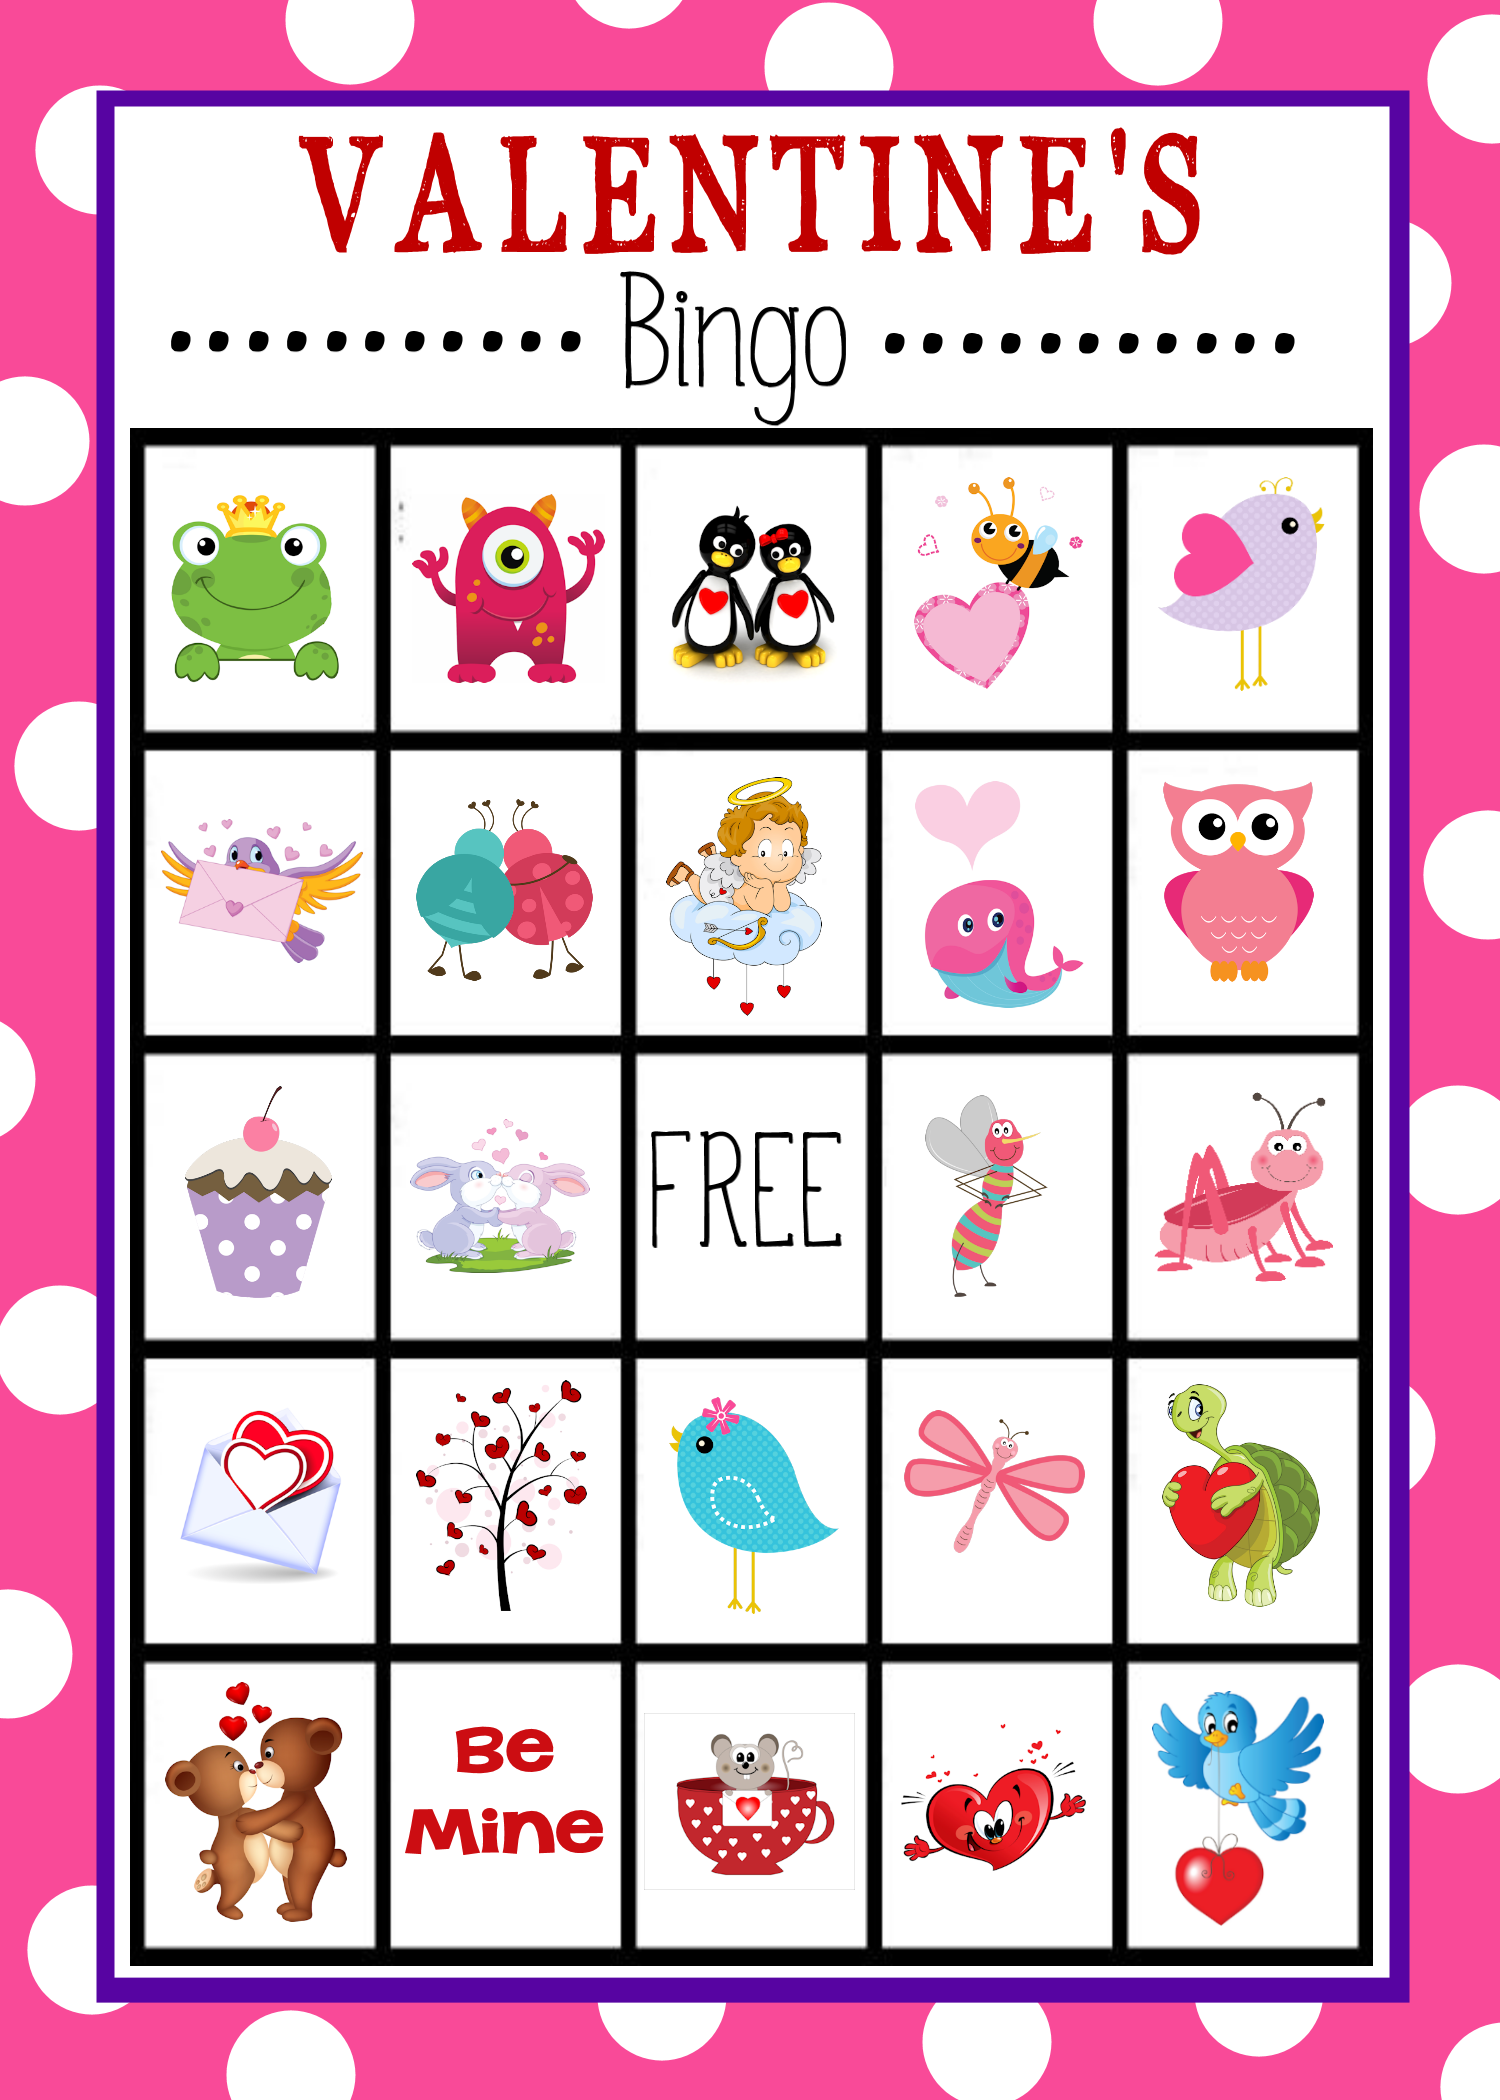 Free Printable Valentines Day Bingo Game Crazy Little Projects – Free Valentine Printable Cards